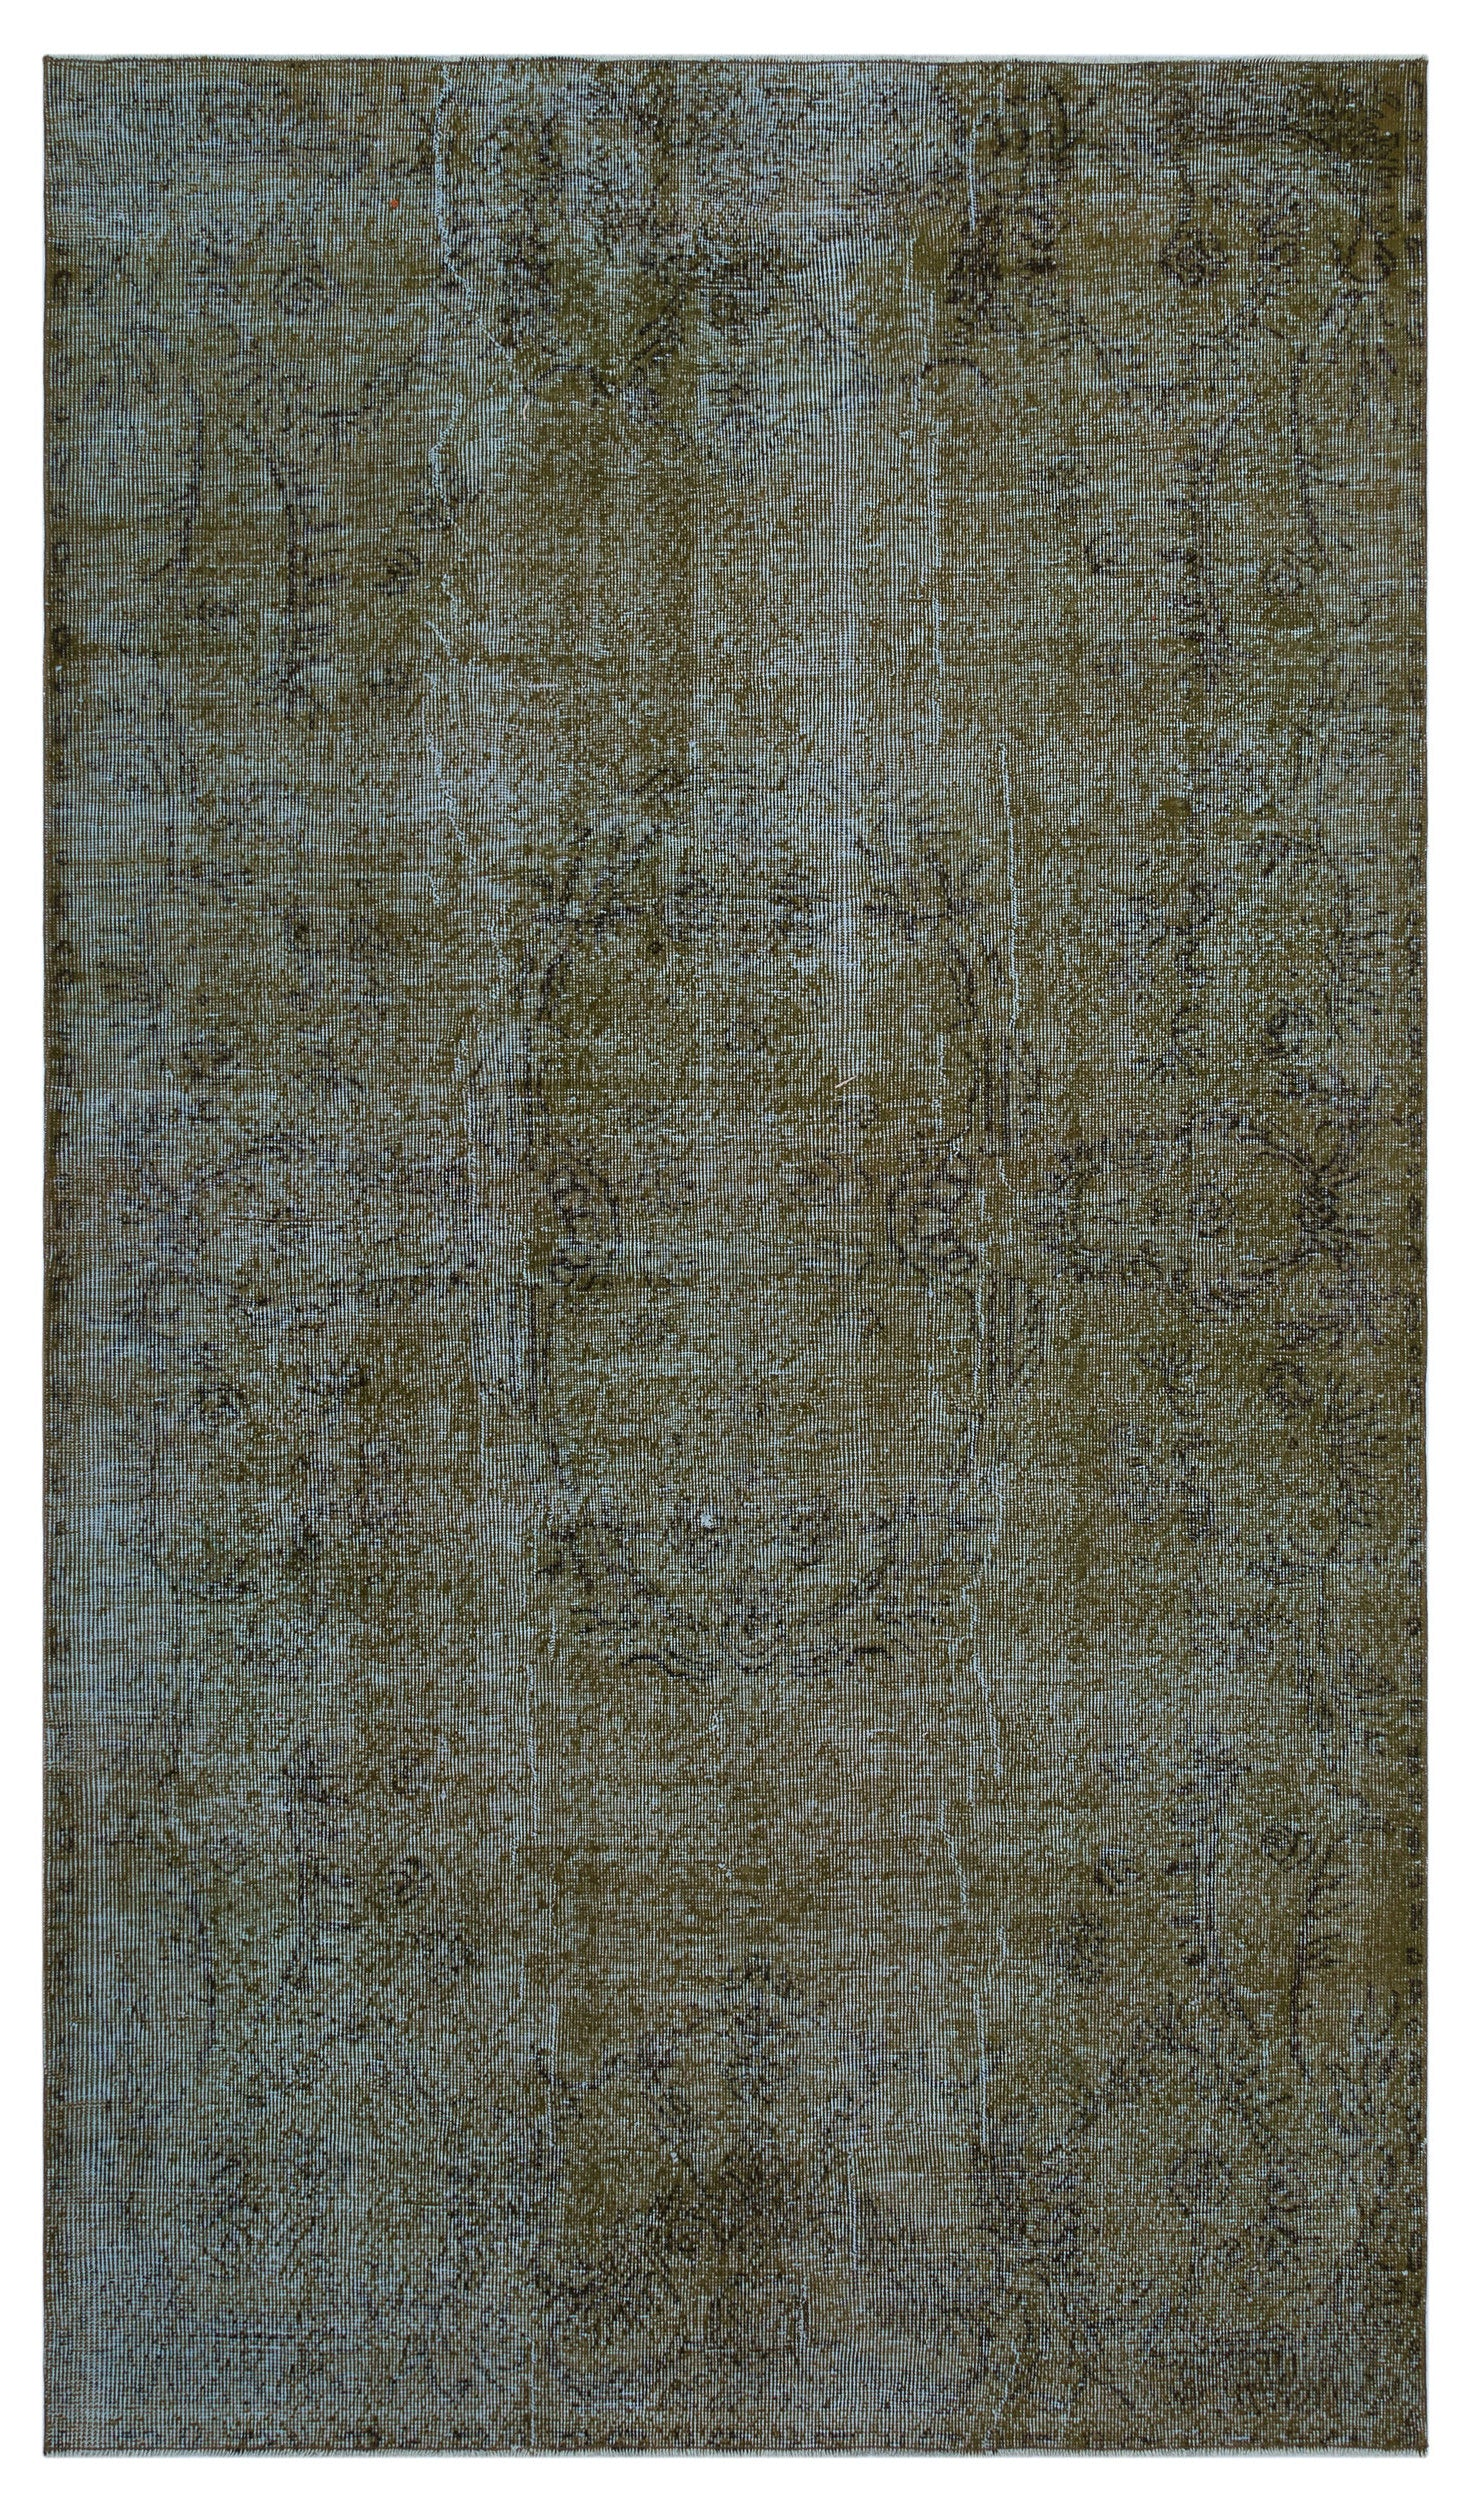 Brown Over Dyed Vintage Rug 5'2'' x 8'12'' ft 158 x 274 cm